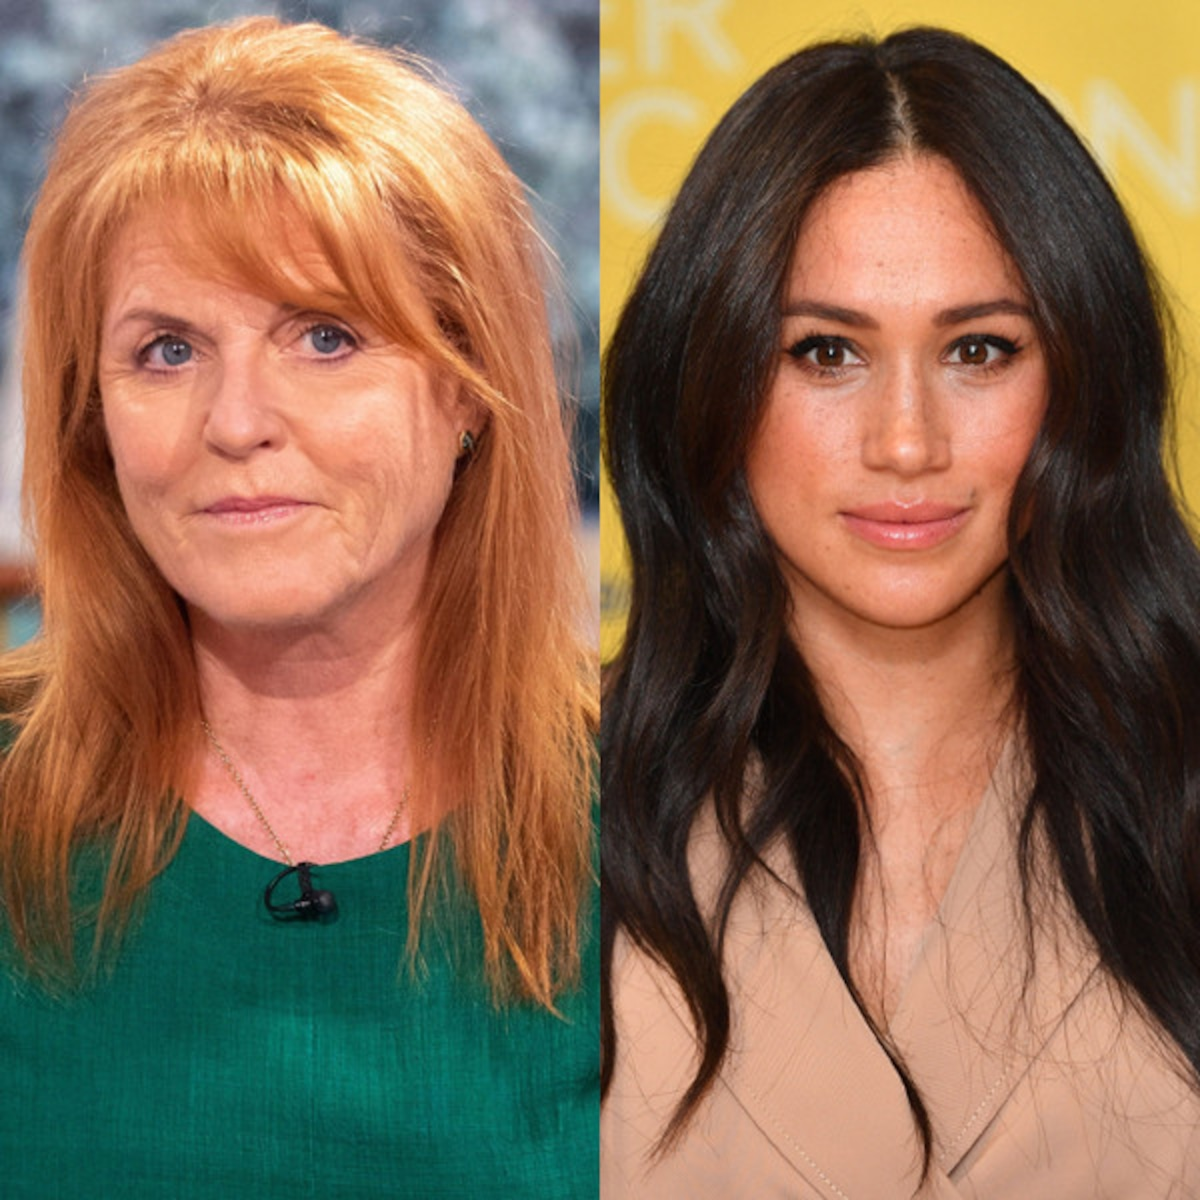 sarah ferguson relates to meghan markle s sad tiring reality e online sarah ferguson relates to meghan markle